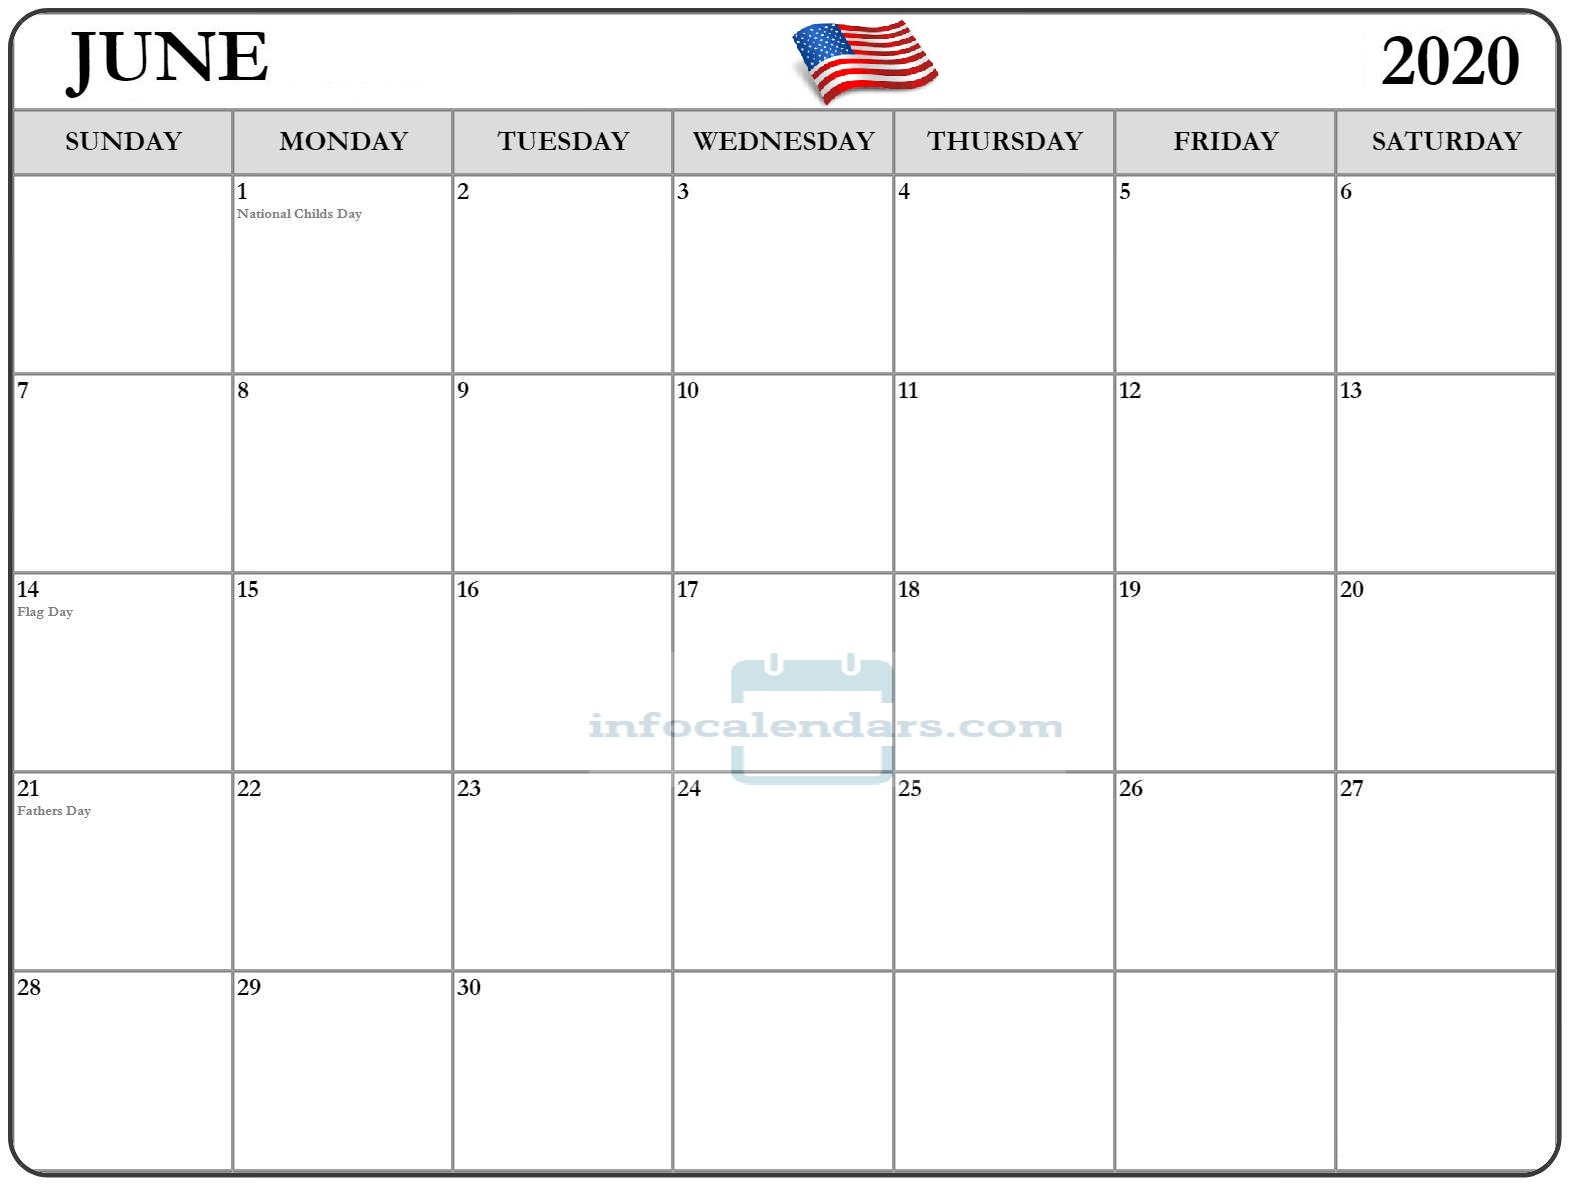 Download Calendar For June 2020